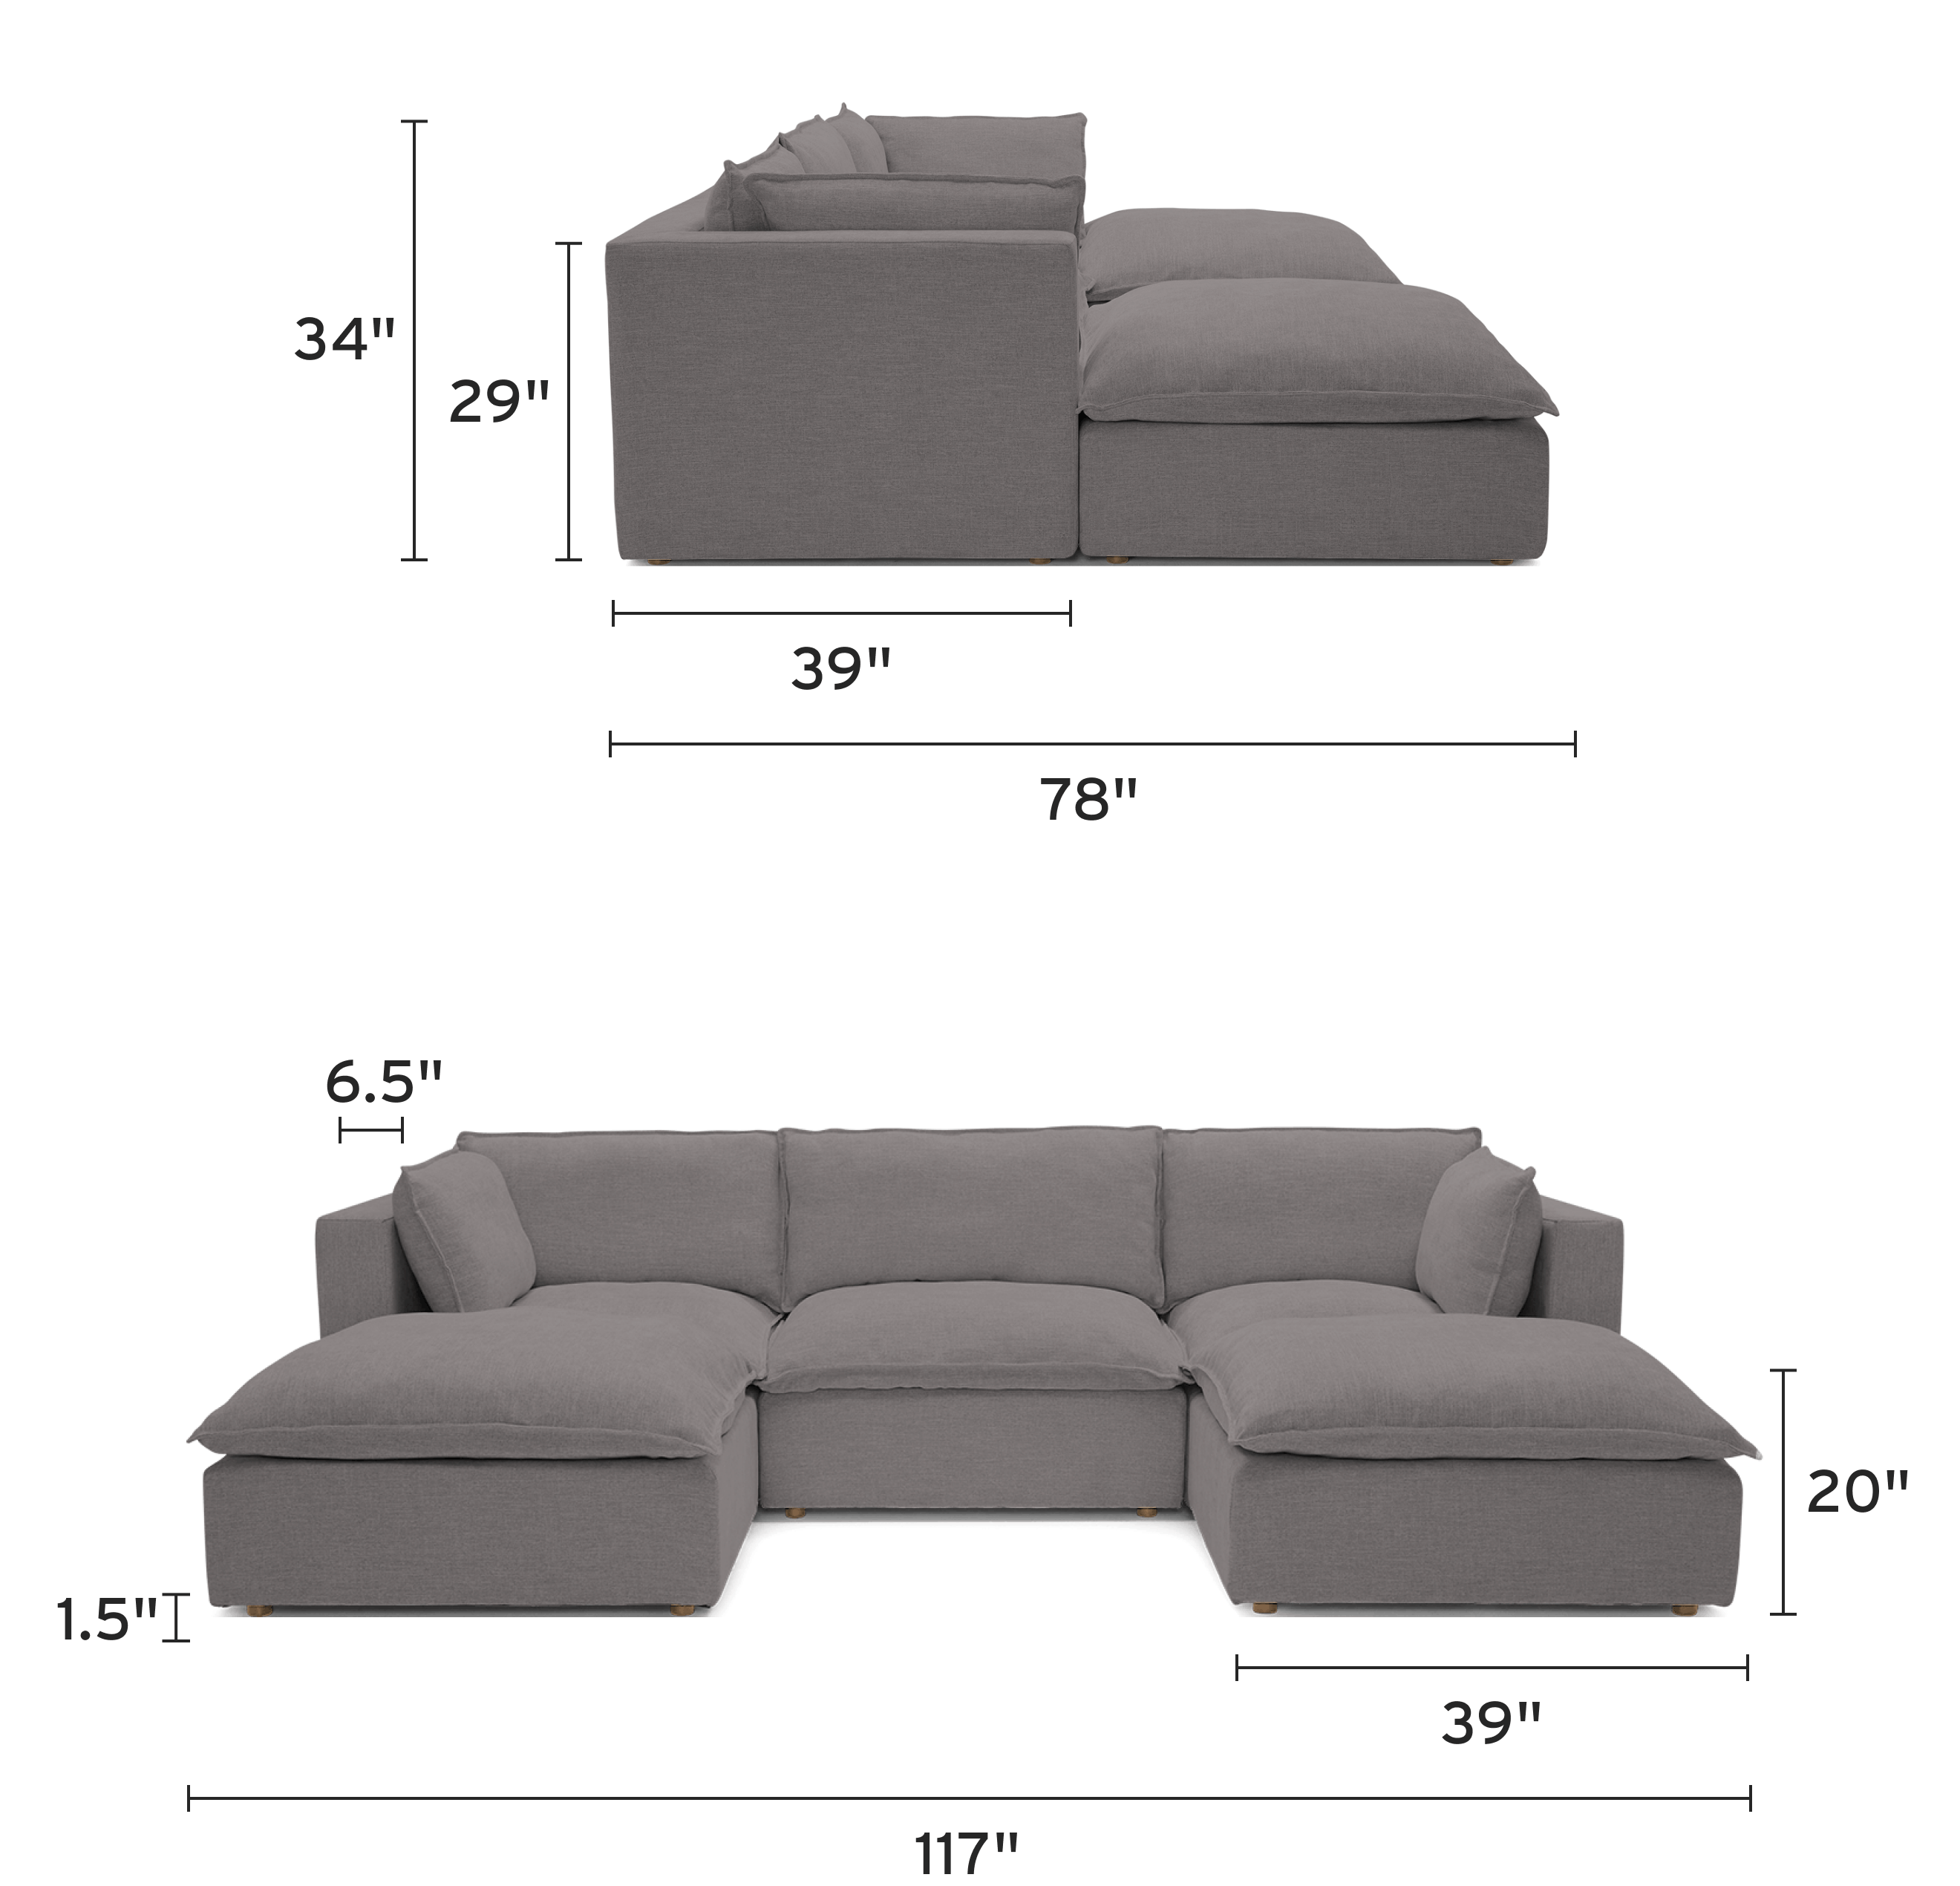 haine modular chaise sectional mobile